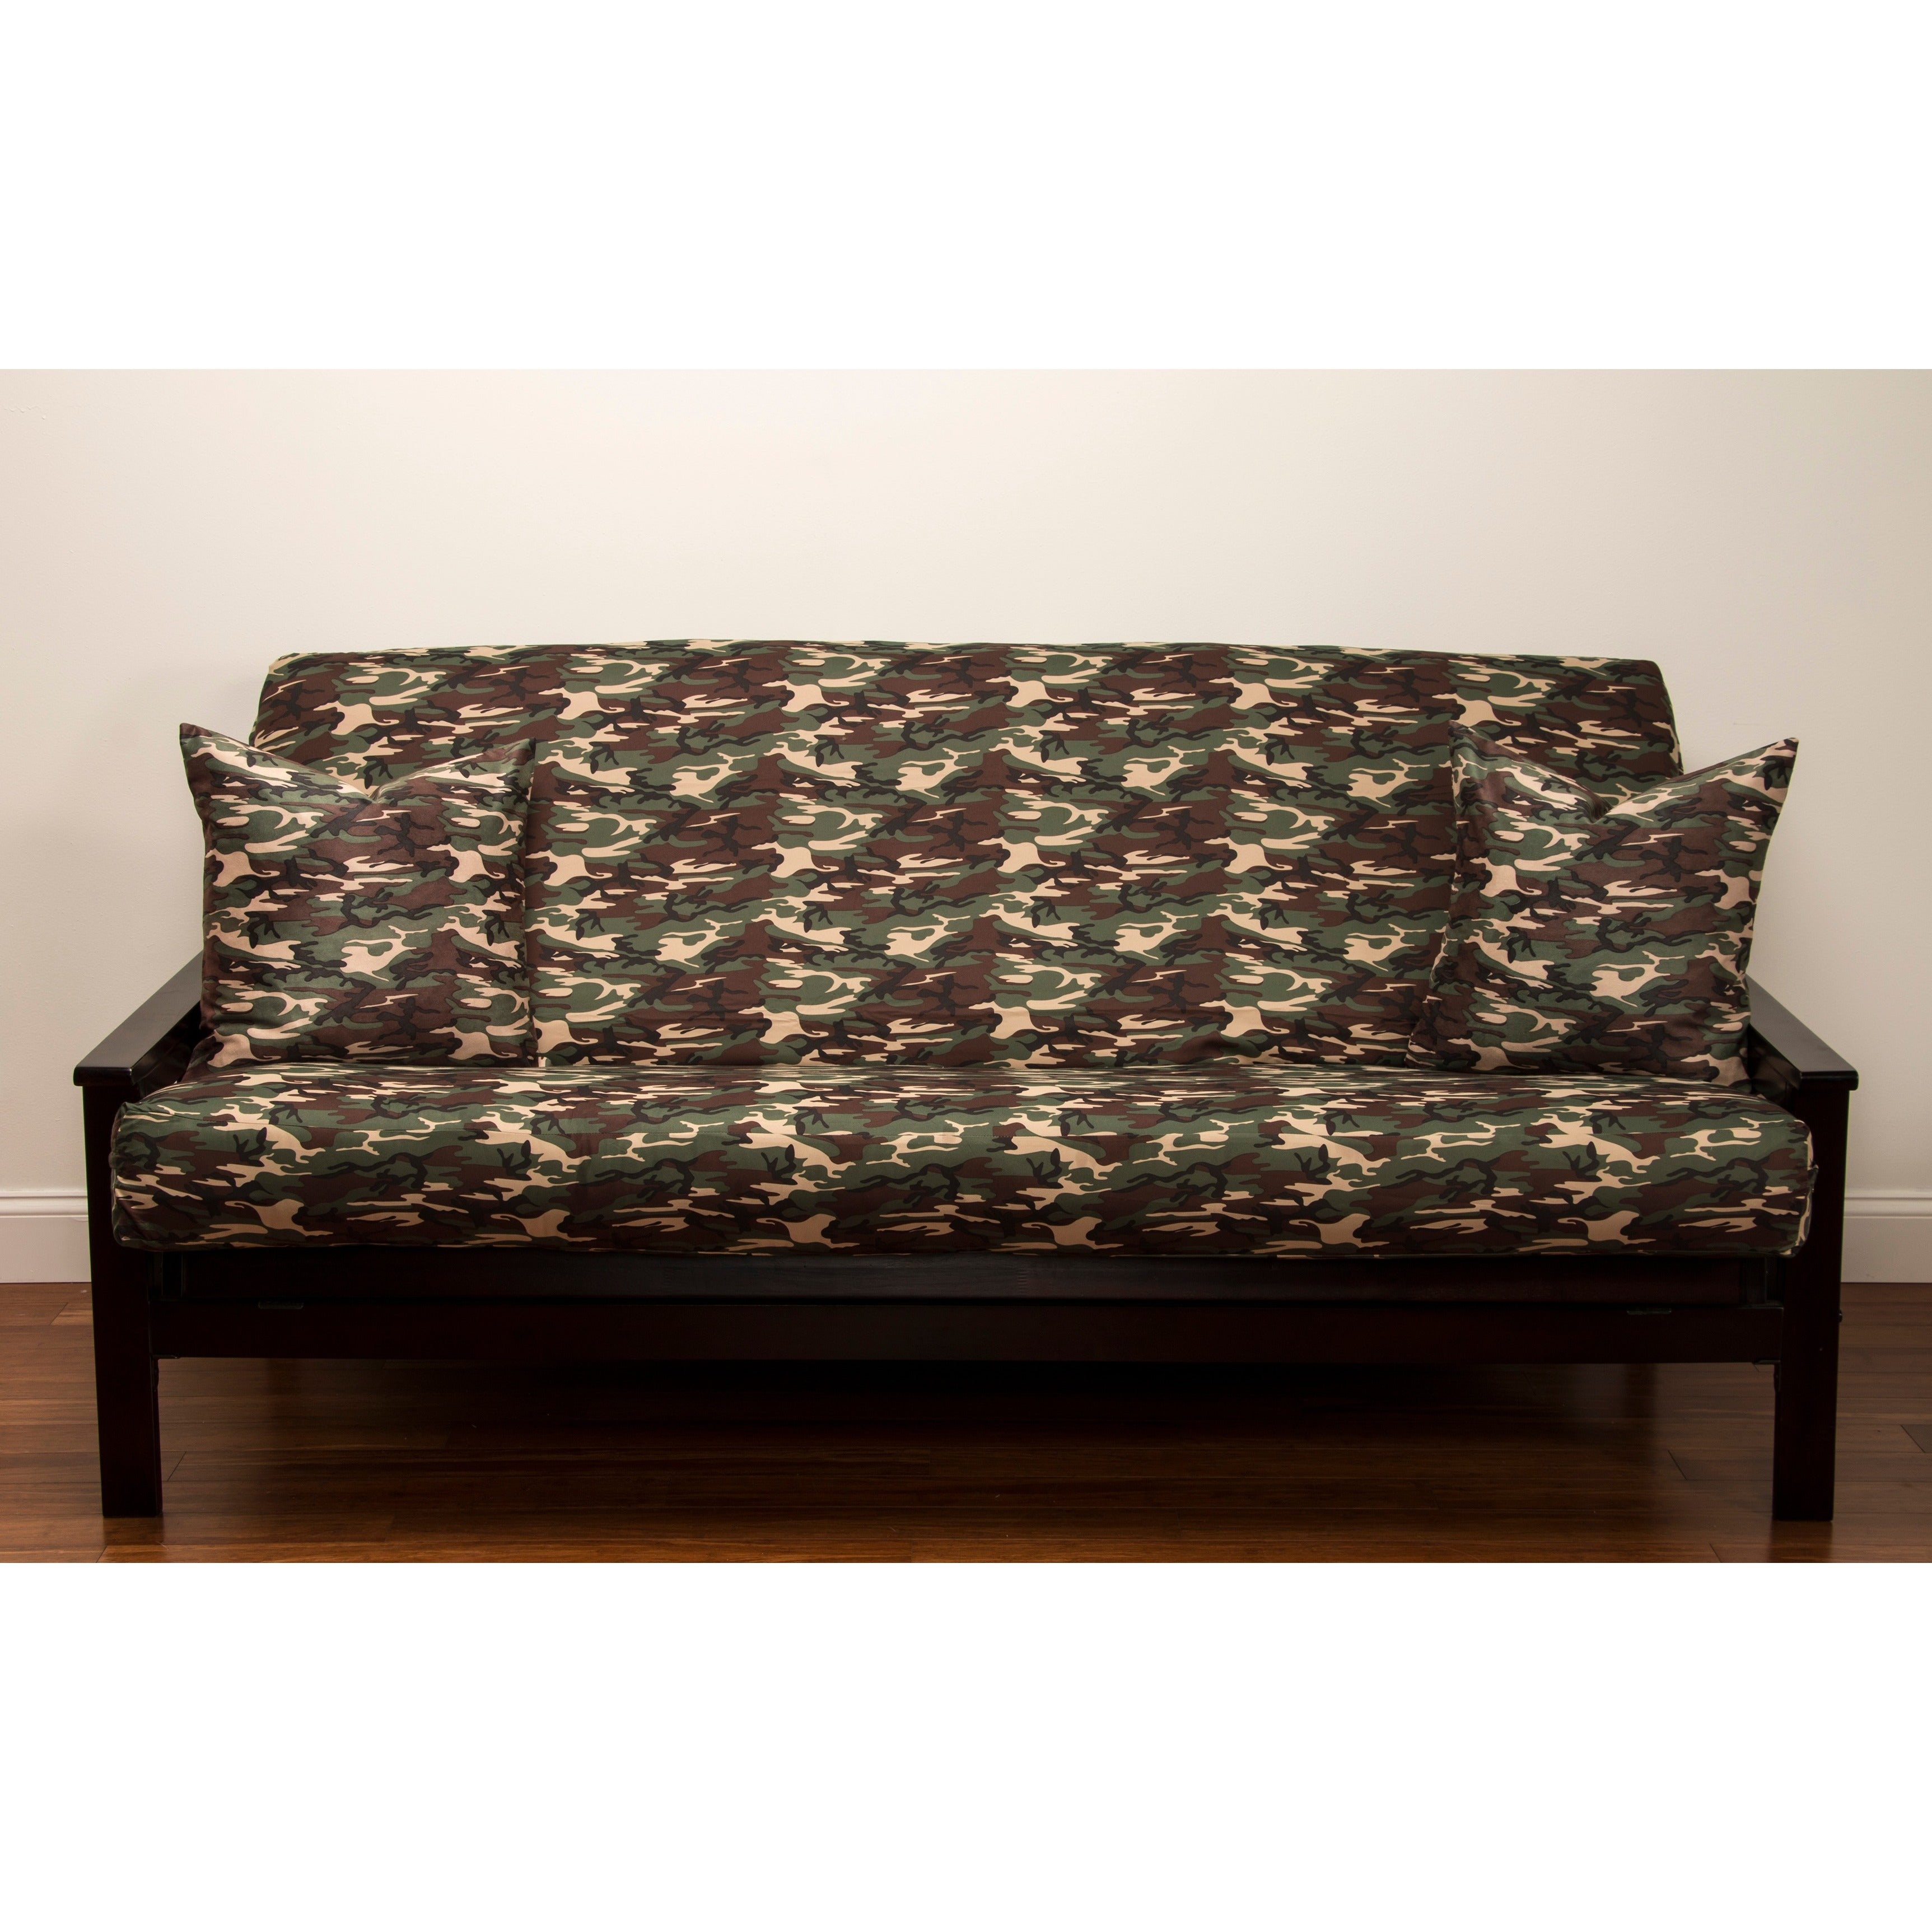 siscovers microfiber camouflage futon cover   free shipping today   overstock     14140746 siscovers microfiber camouflage futon cover   free shipping today      rh   overstock